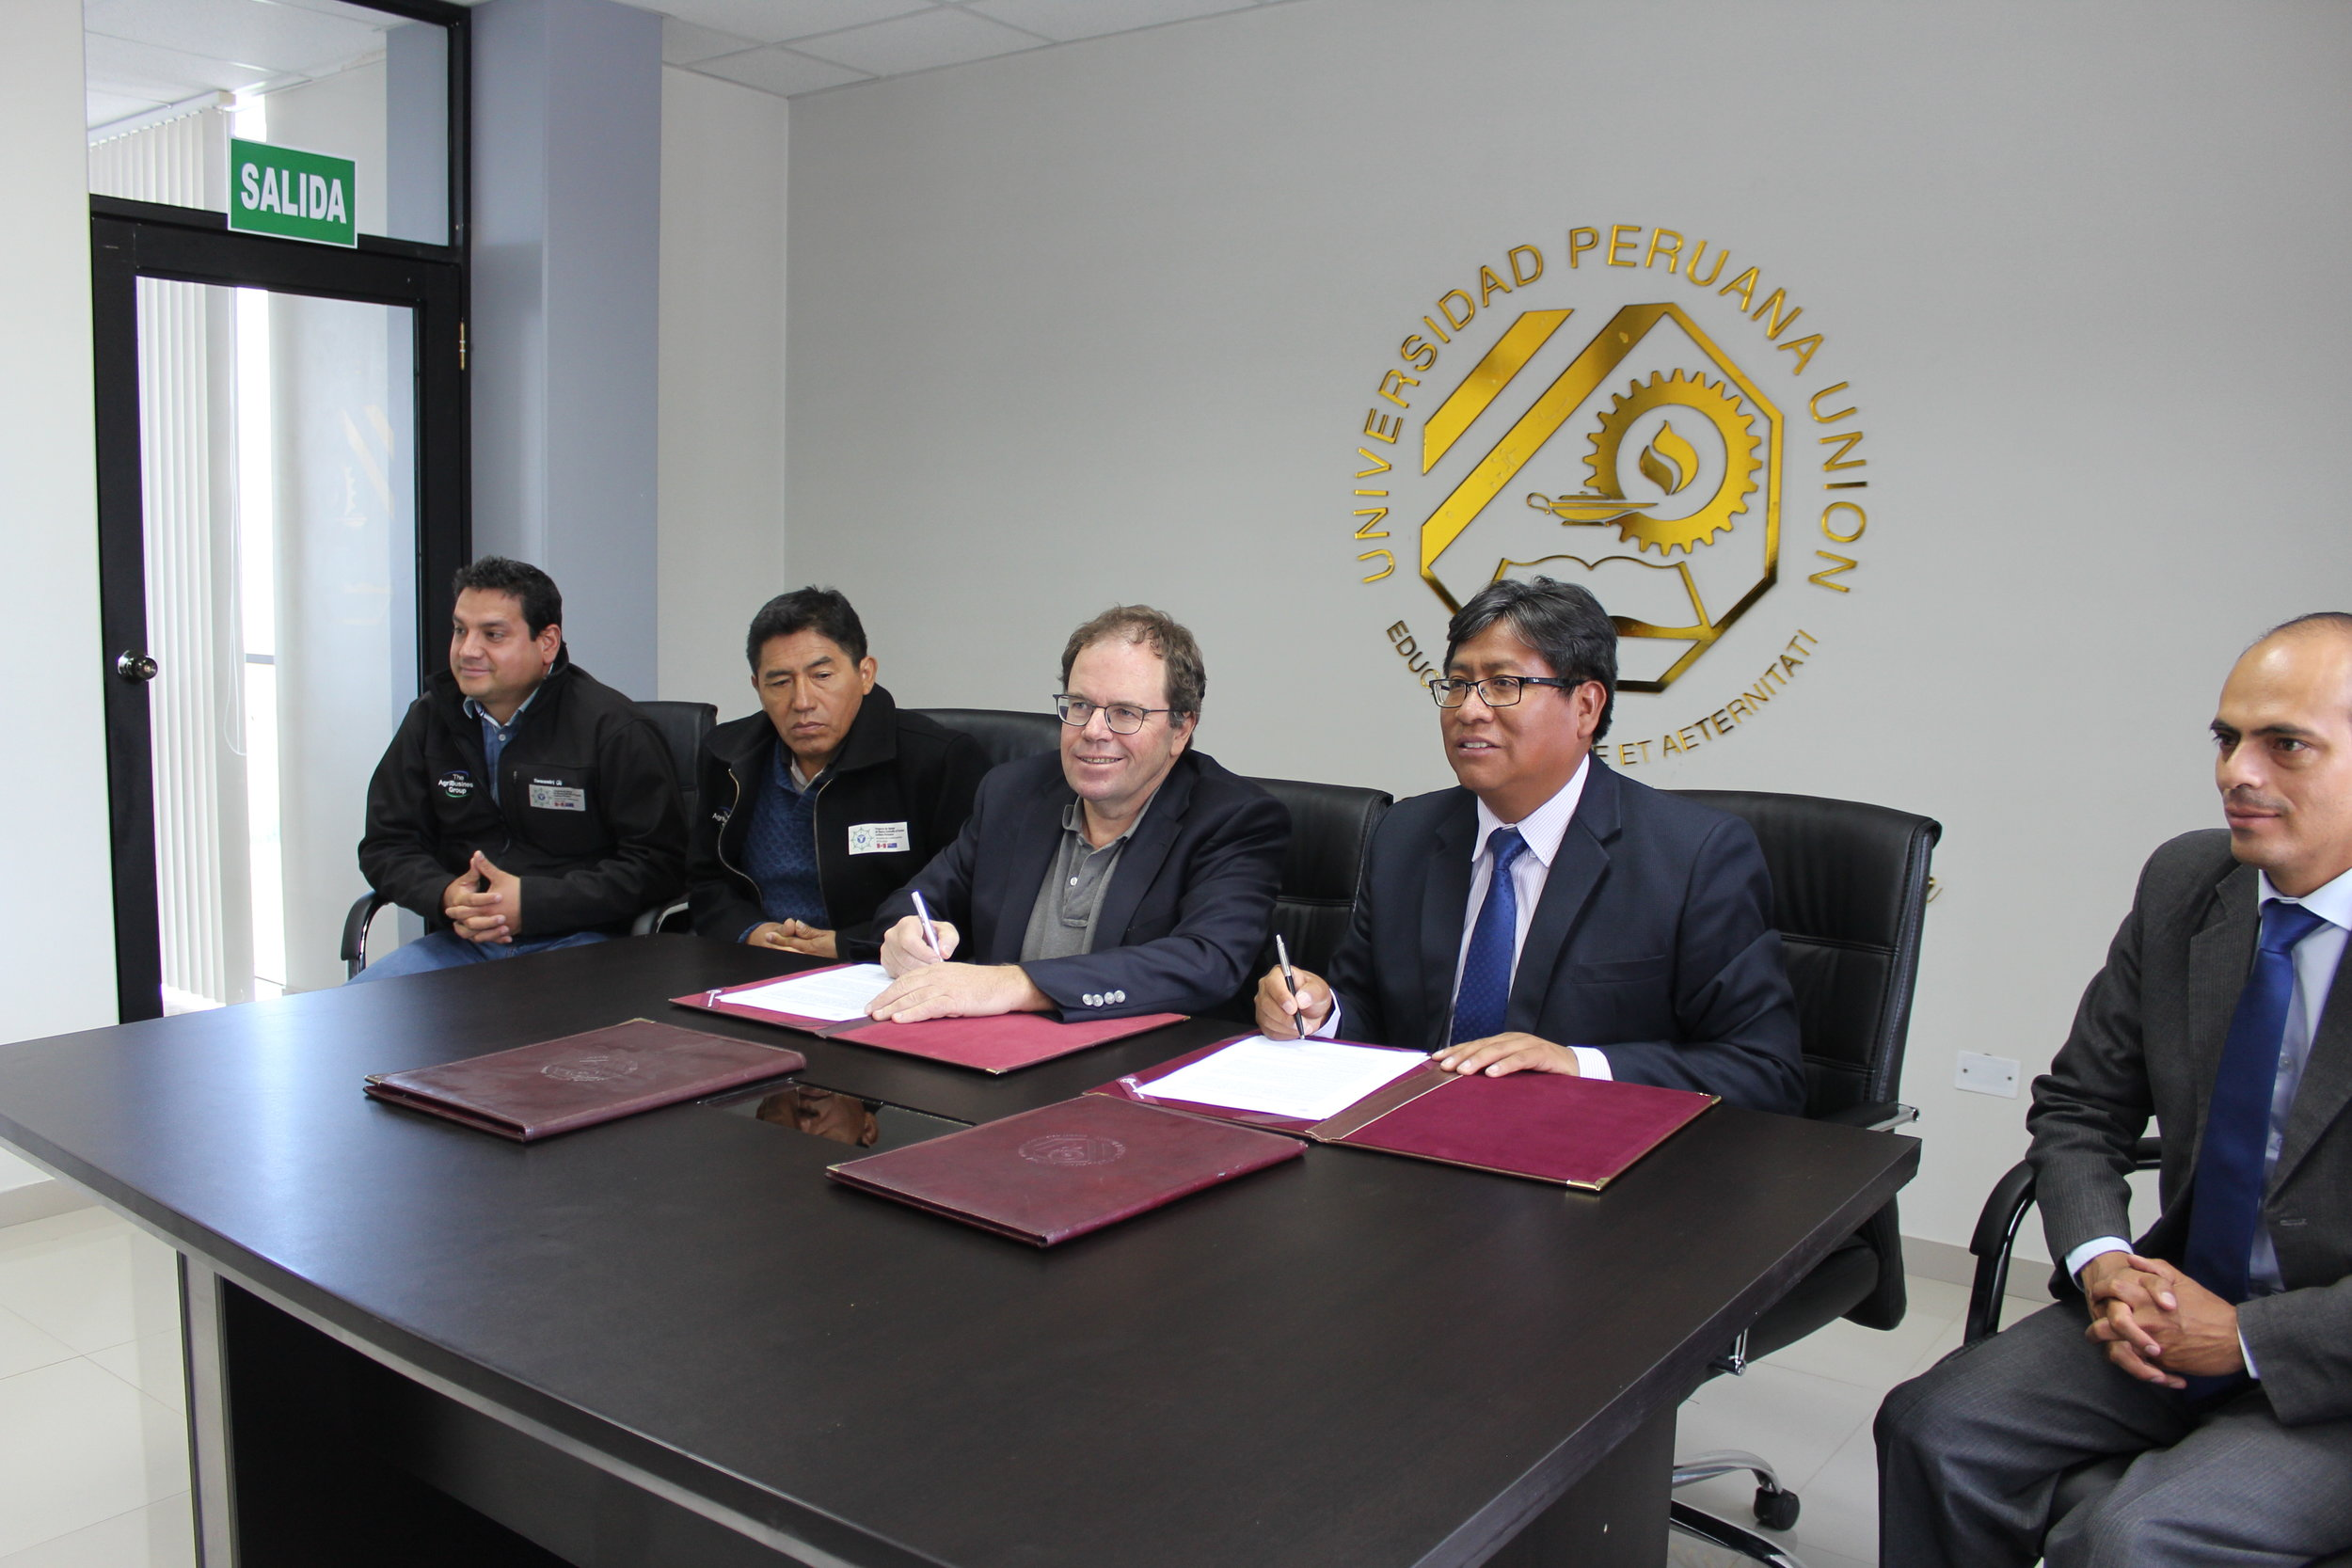 Renzo Cuadros (RC-Puno), Cesar Pinares (Int. Coordinator) and Jon Manhire (Director TAG) signing of a Letter of Intention Agreement with Universidad Peruana Union, Juliaca, Puno.